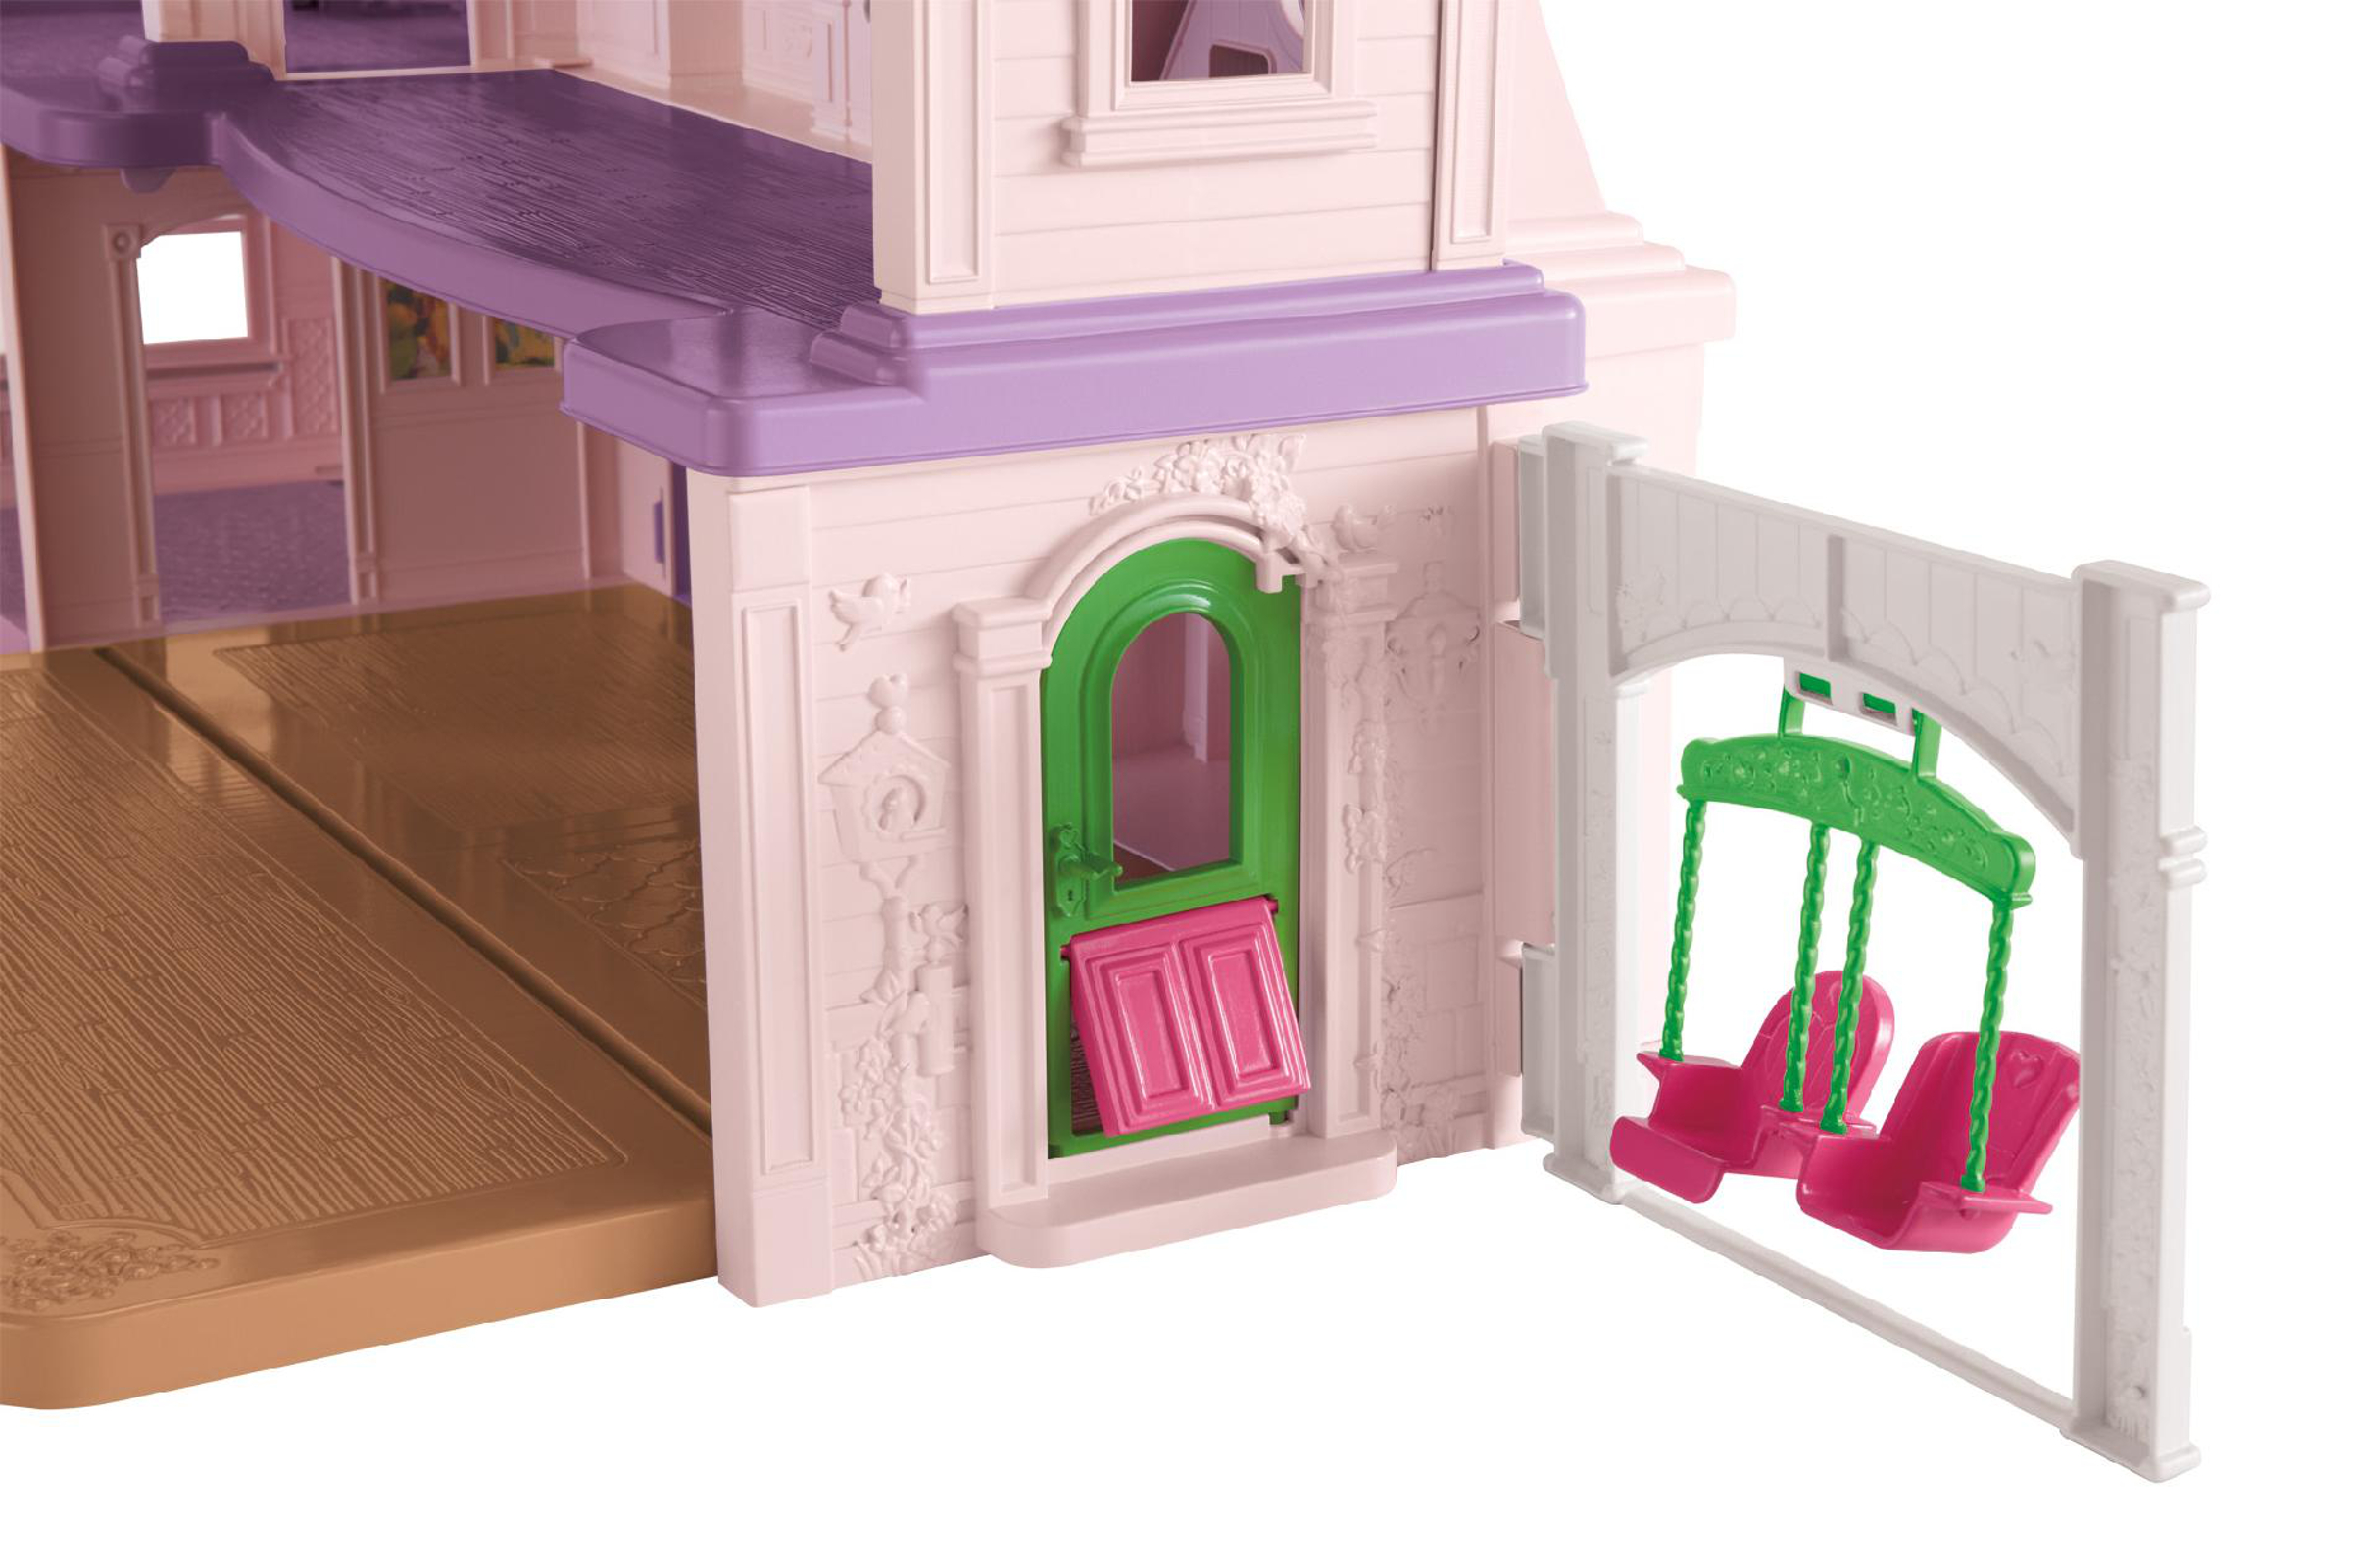 Toddler Dollhouse Doll House Fisher Price Loving Family Play Toy Christmas